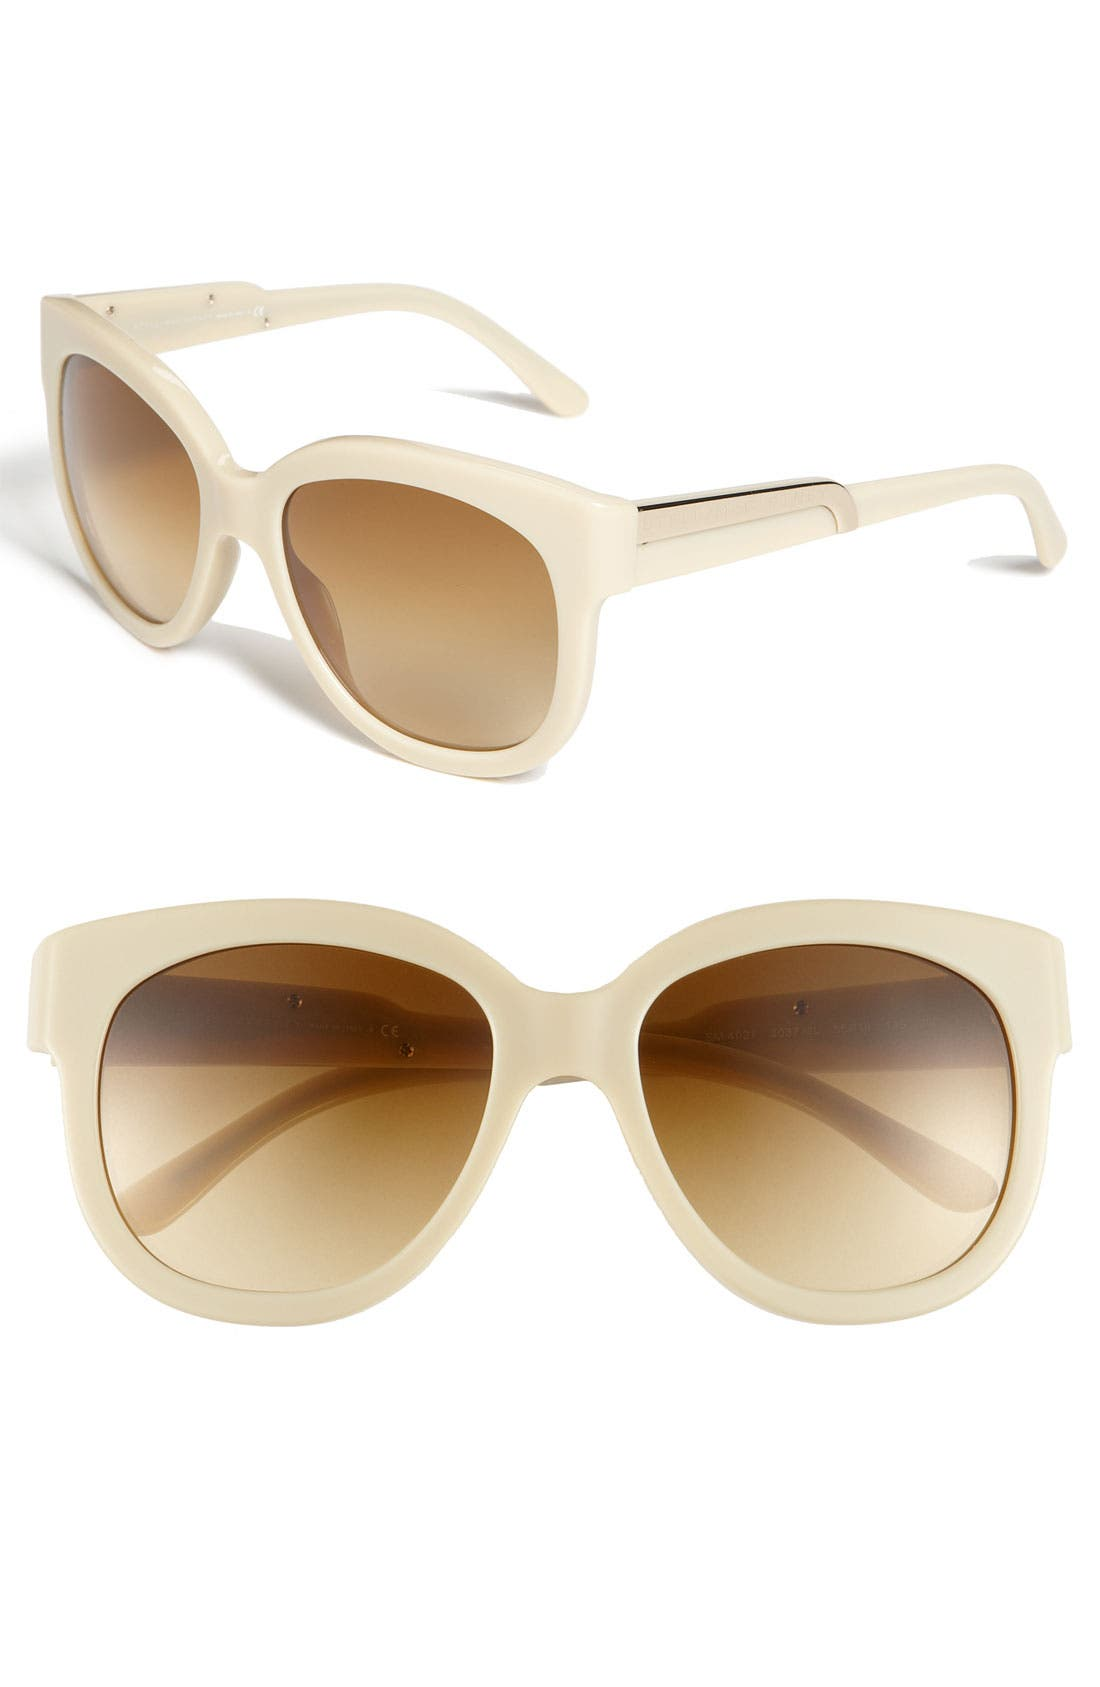 Alternate Image 1 Selected - Stella McCartney 55mm Oversized Cat's-Eye Sunglasses